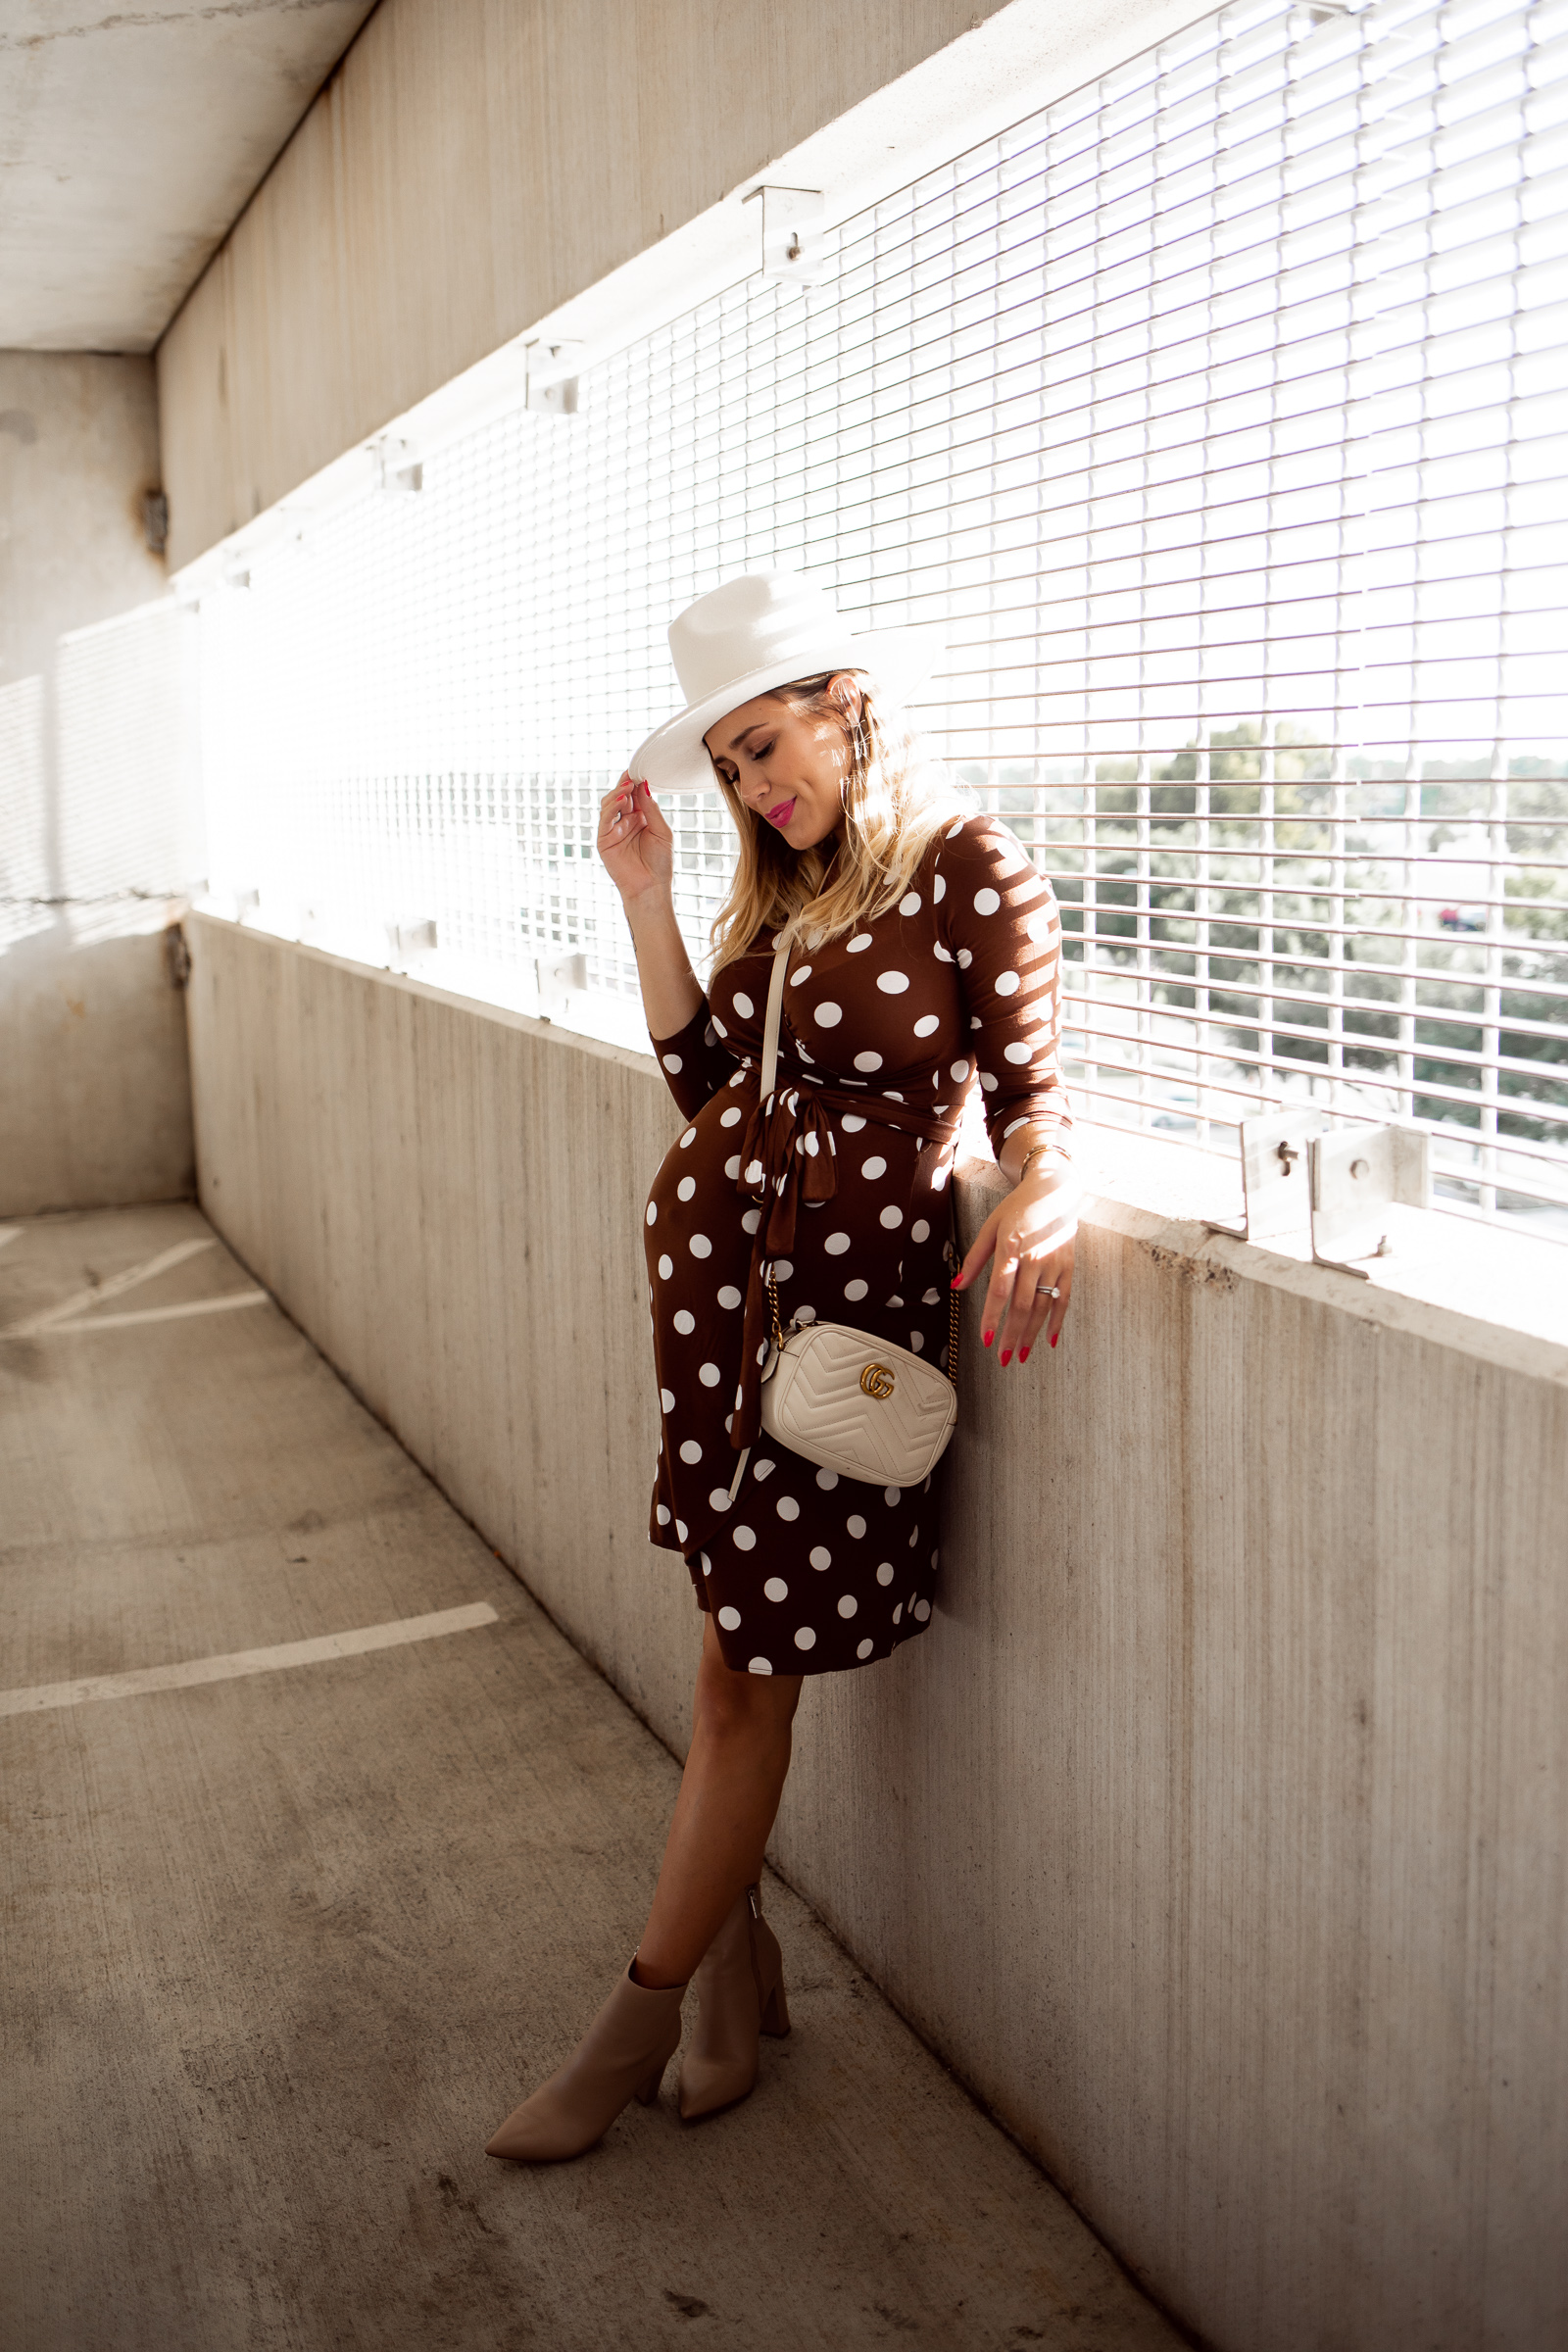 houston fashion blogger Elly Brown wears a maternity polka dot dress with ankle booties and a wool hat